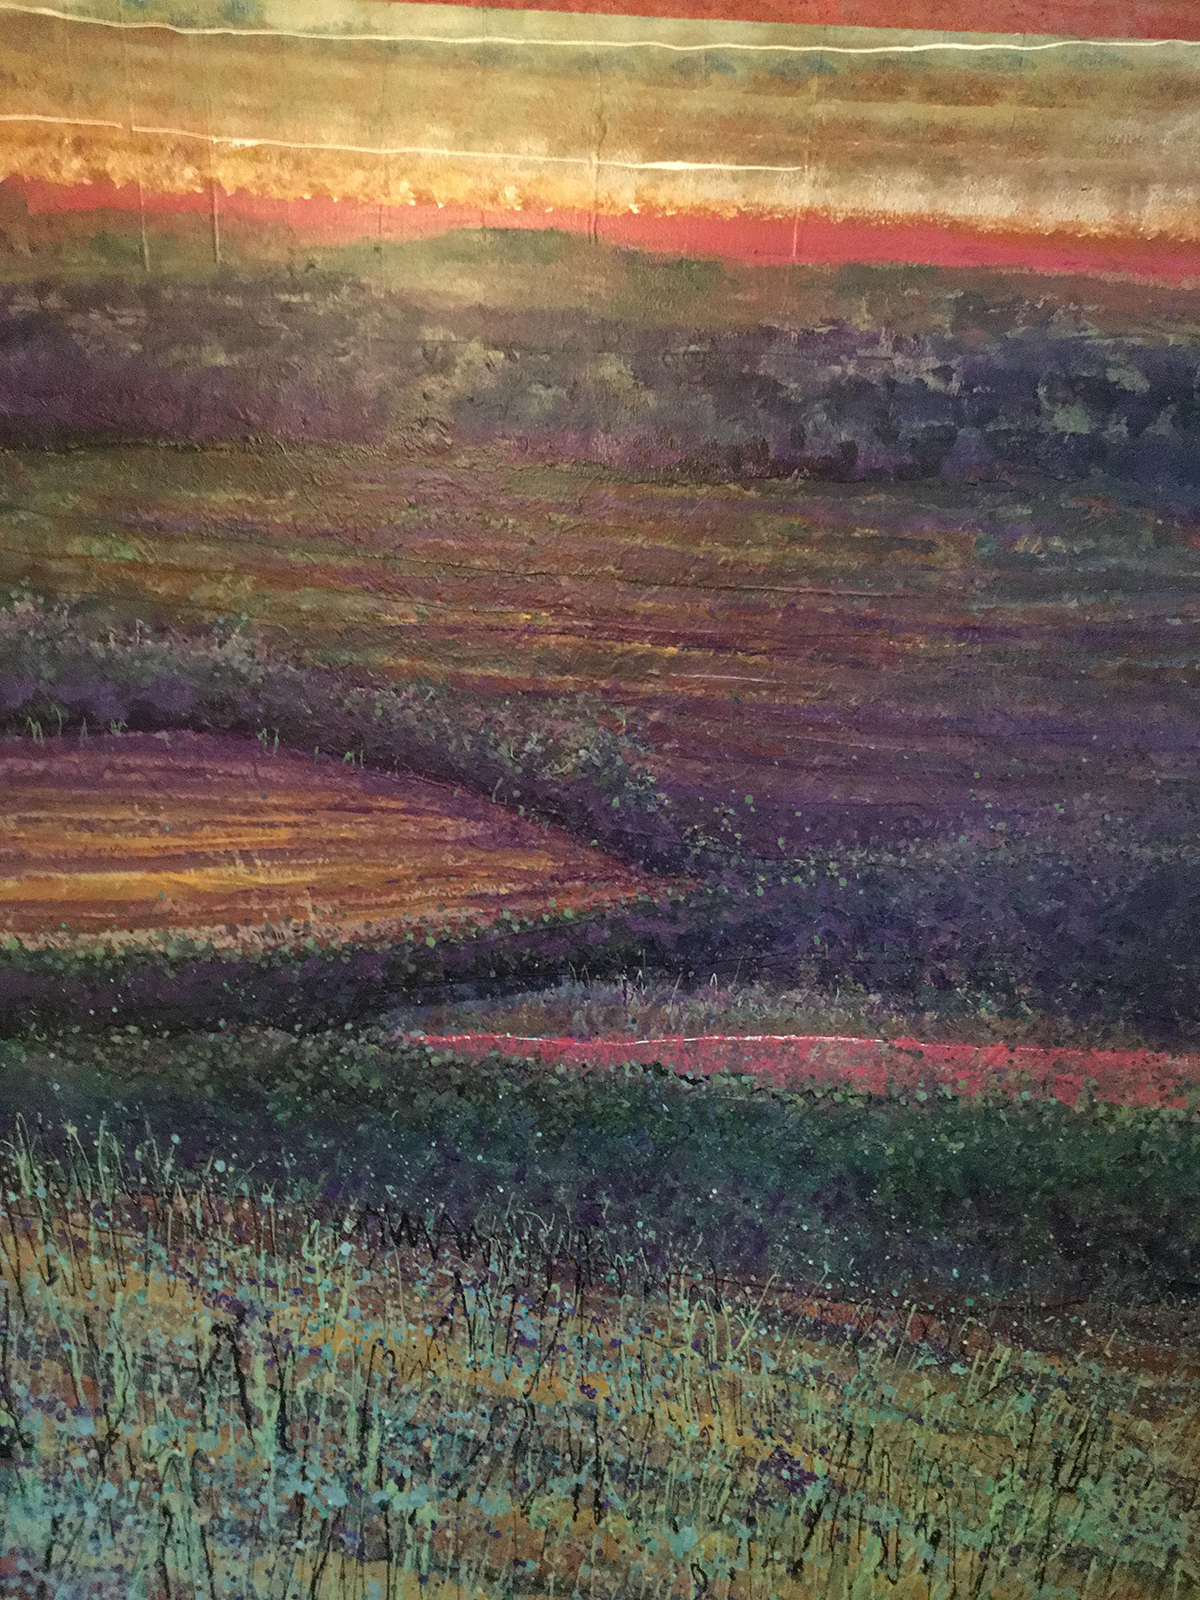 Painting by Keith Patterson. Clarke County Landscape.